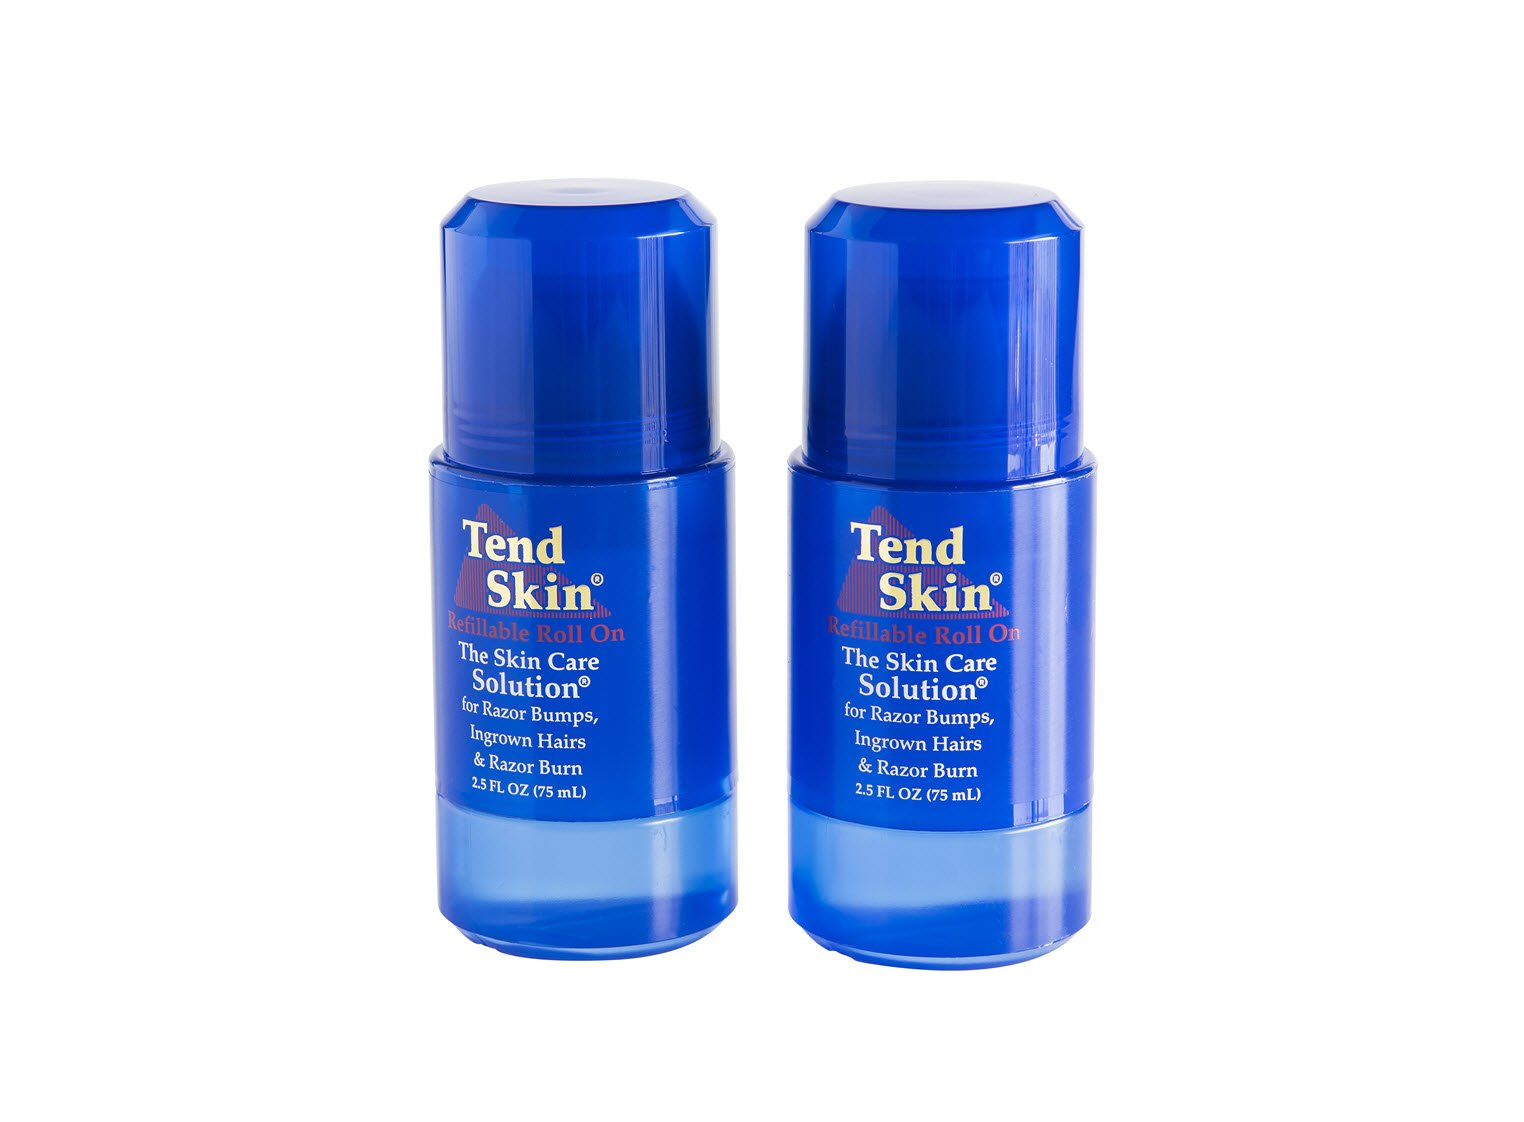 Tend Skin Roll On